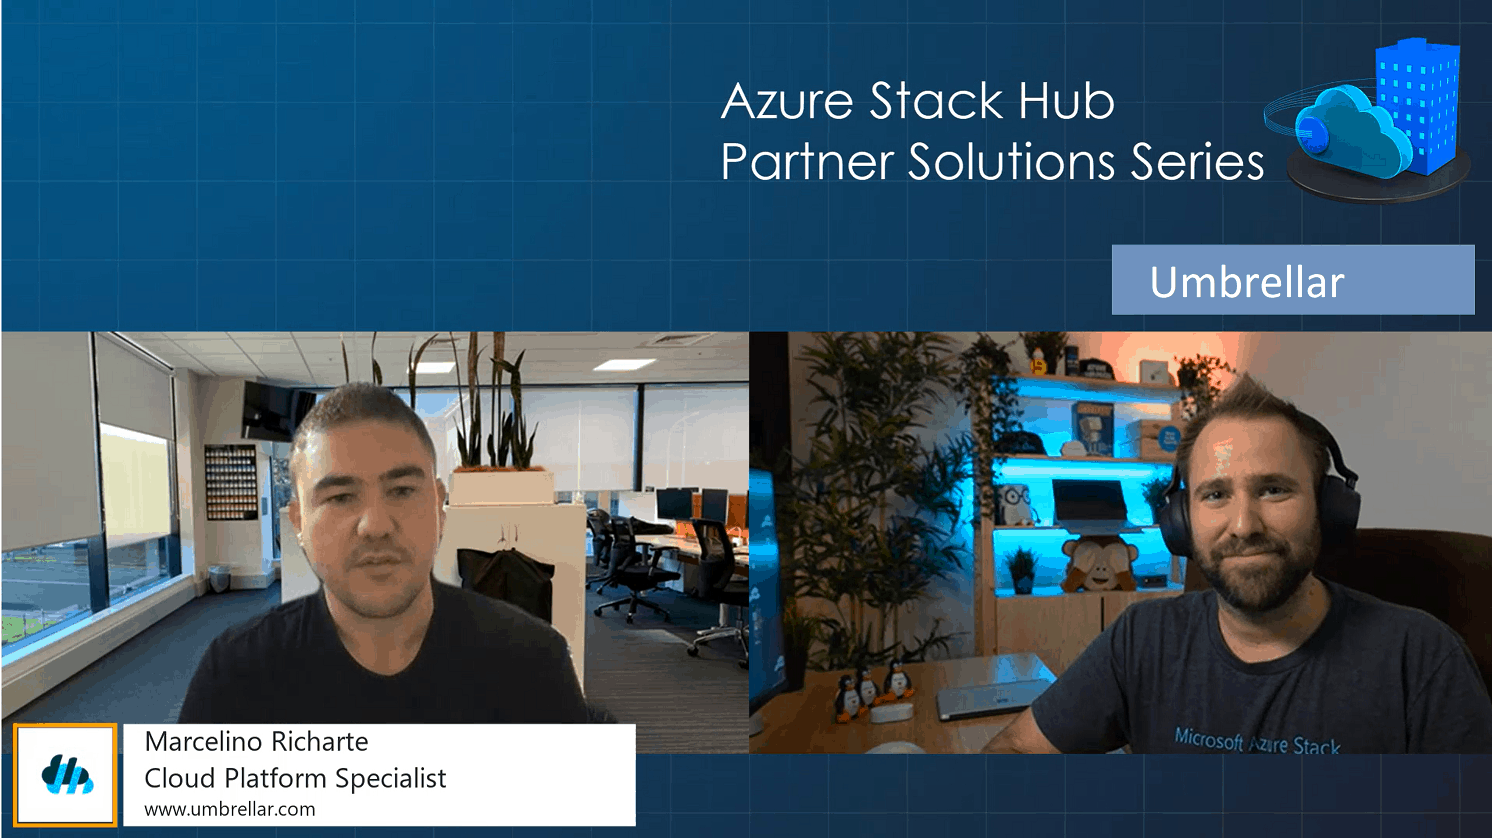 Azure Stack Hub Partner Solutions Series - Umbrellar